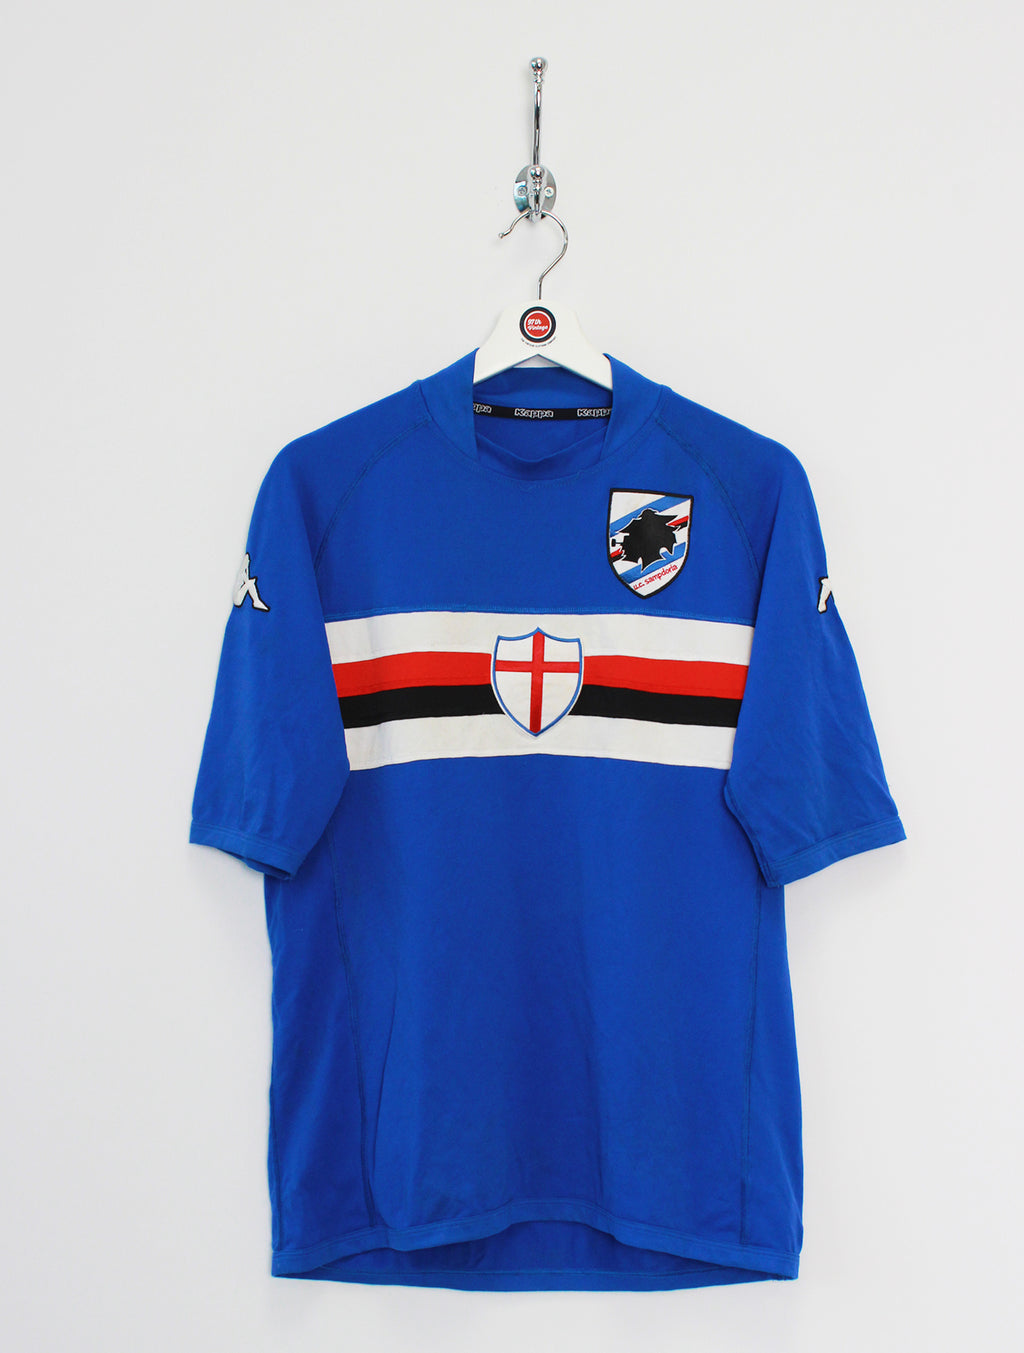 2009/10 Sampdoria Football Shirt (S)